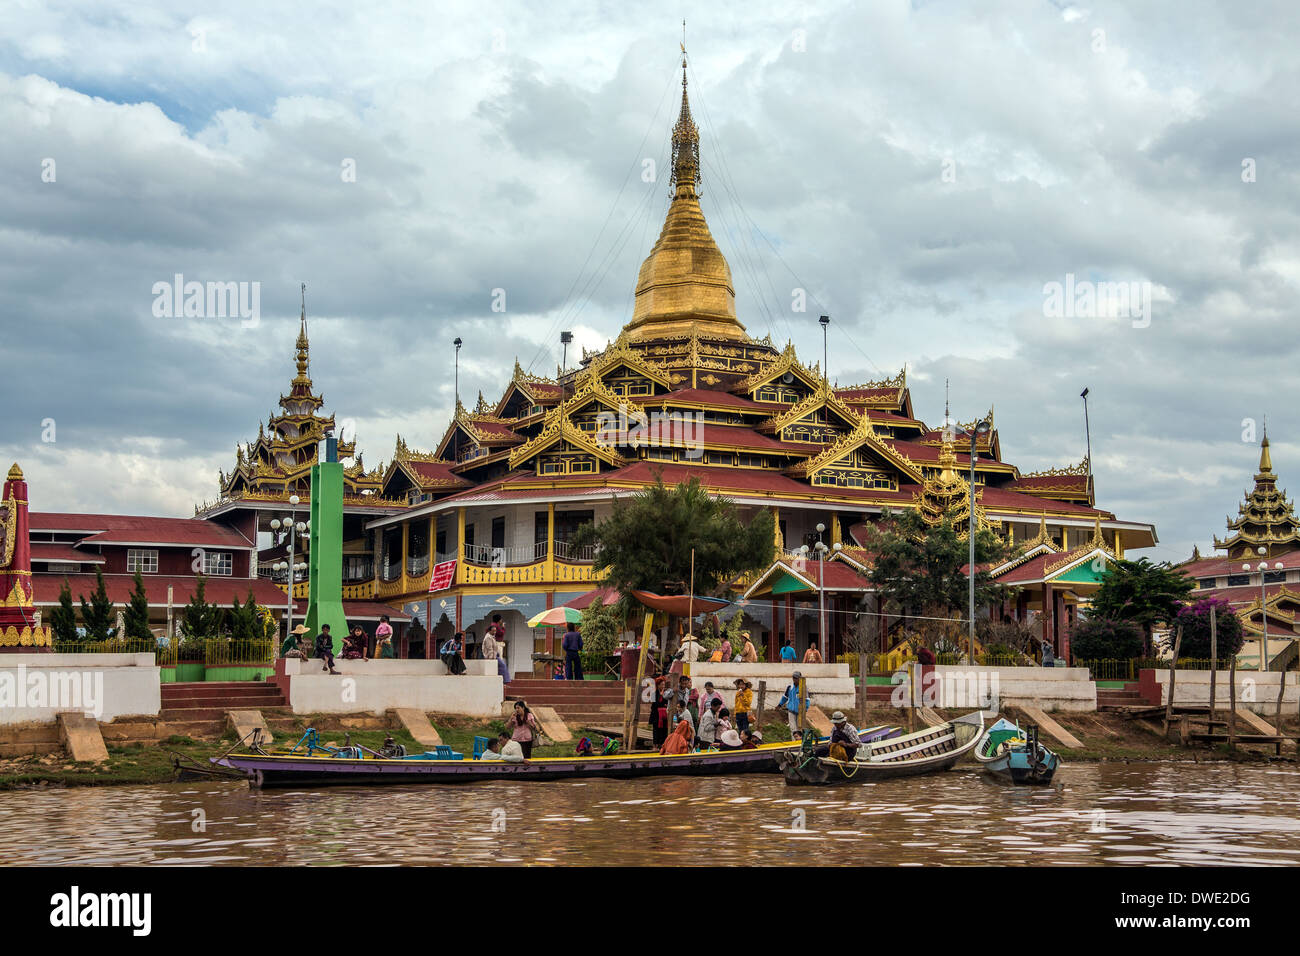 Phaung Dow Oo Buddhist Temple on Inle Lake in Shan State in central Myanmar (Burma). - Stock Image